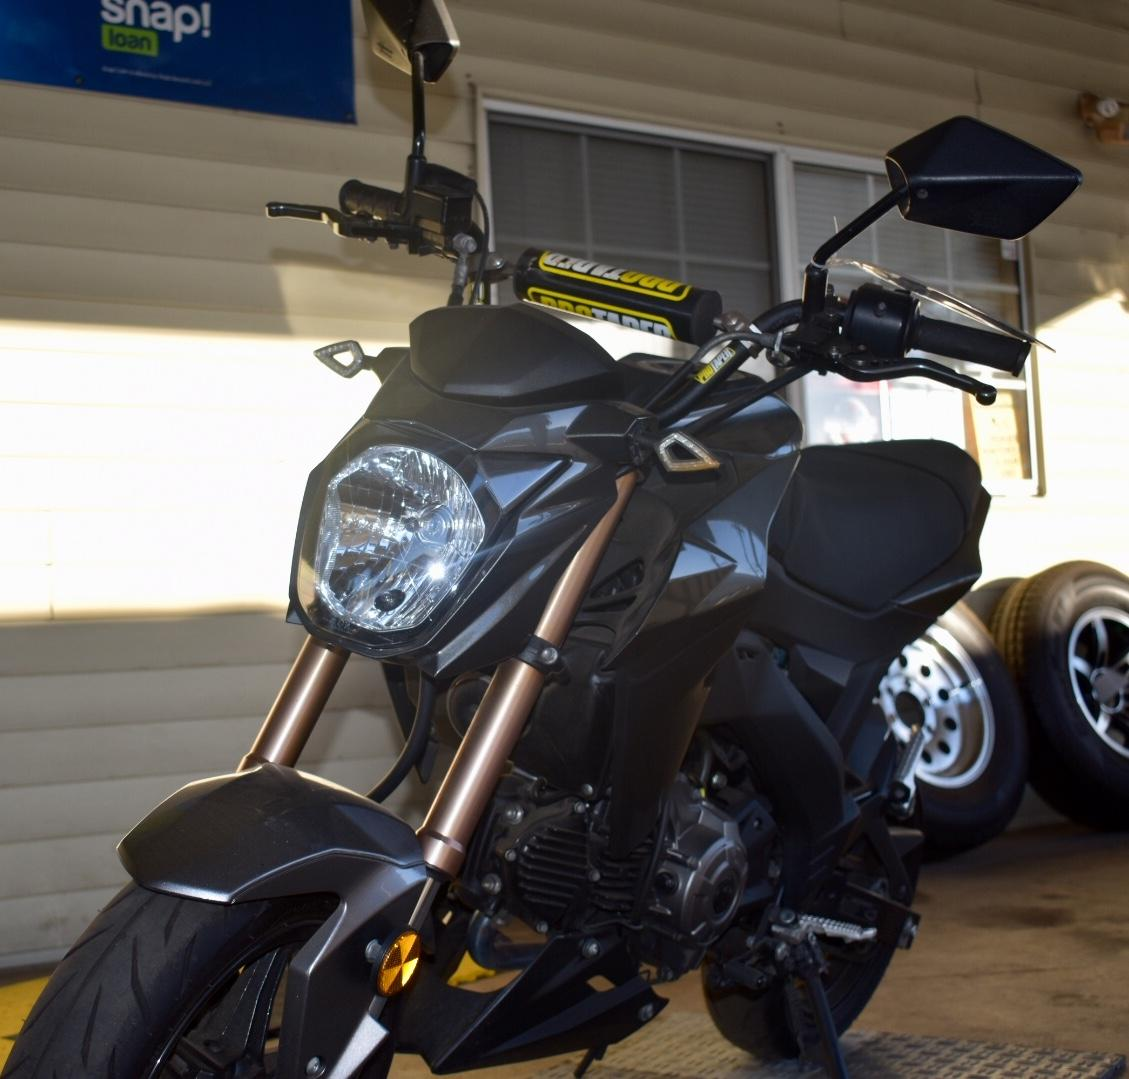 -Ready To Ride-5400 Miles-Masurri Exhaust-Fully Serviced-Integrated LED Tail Light-Adjust